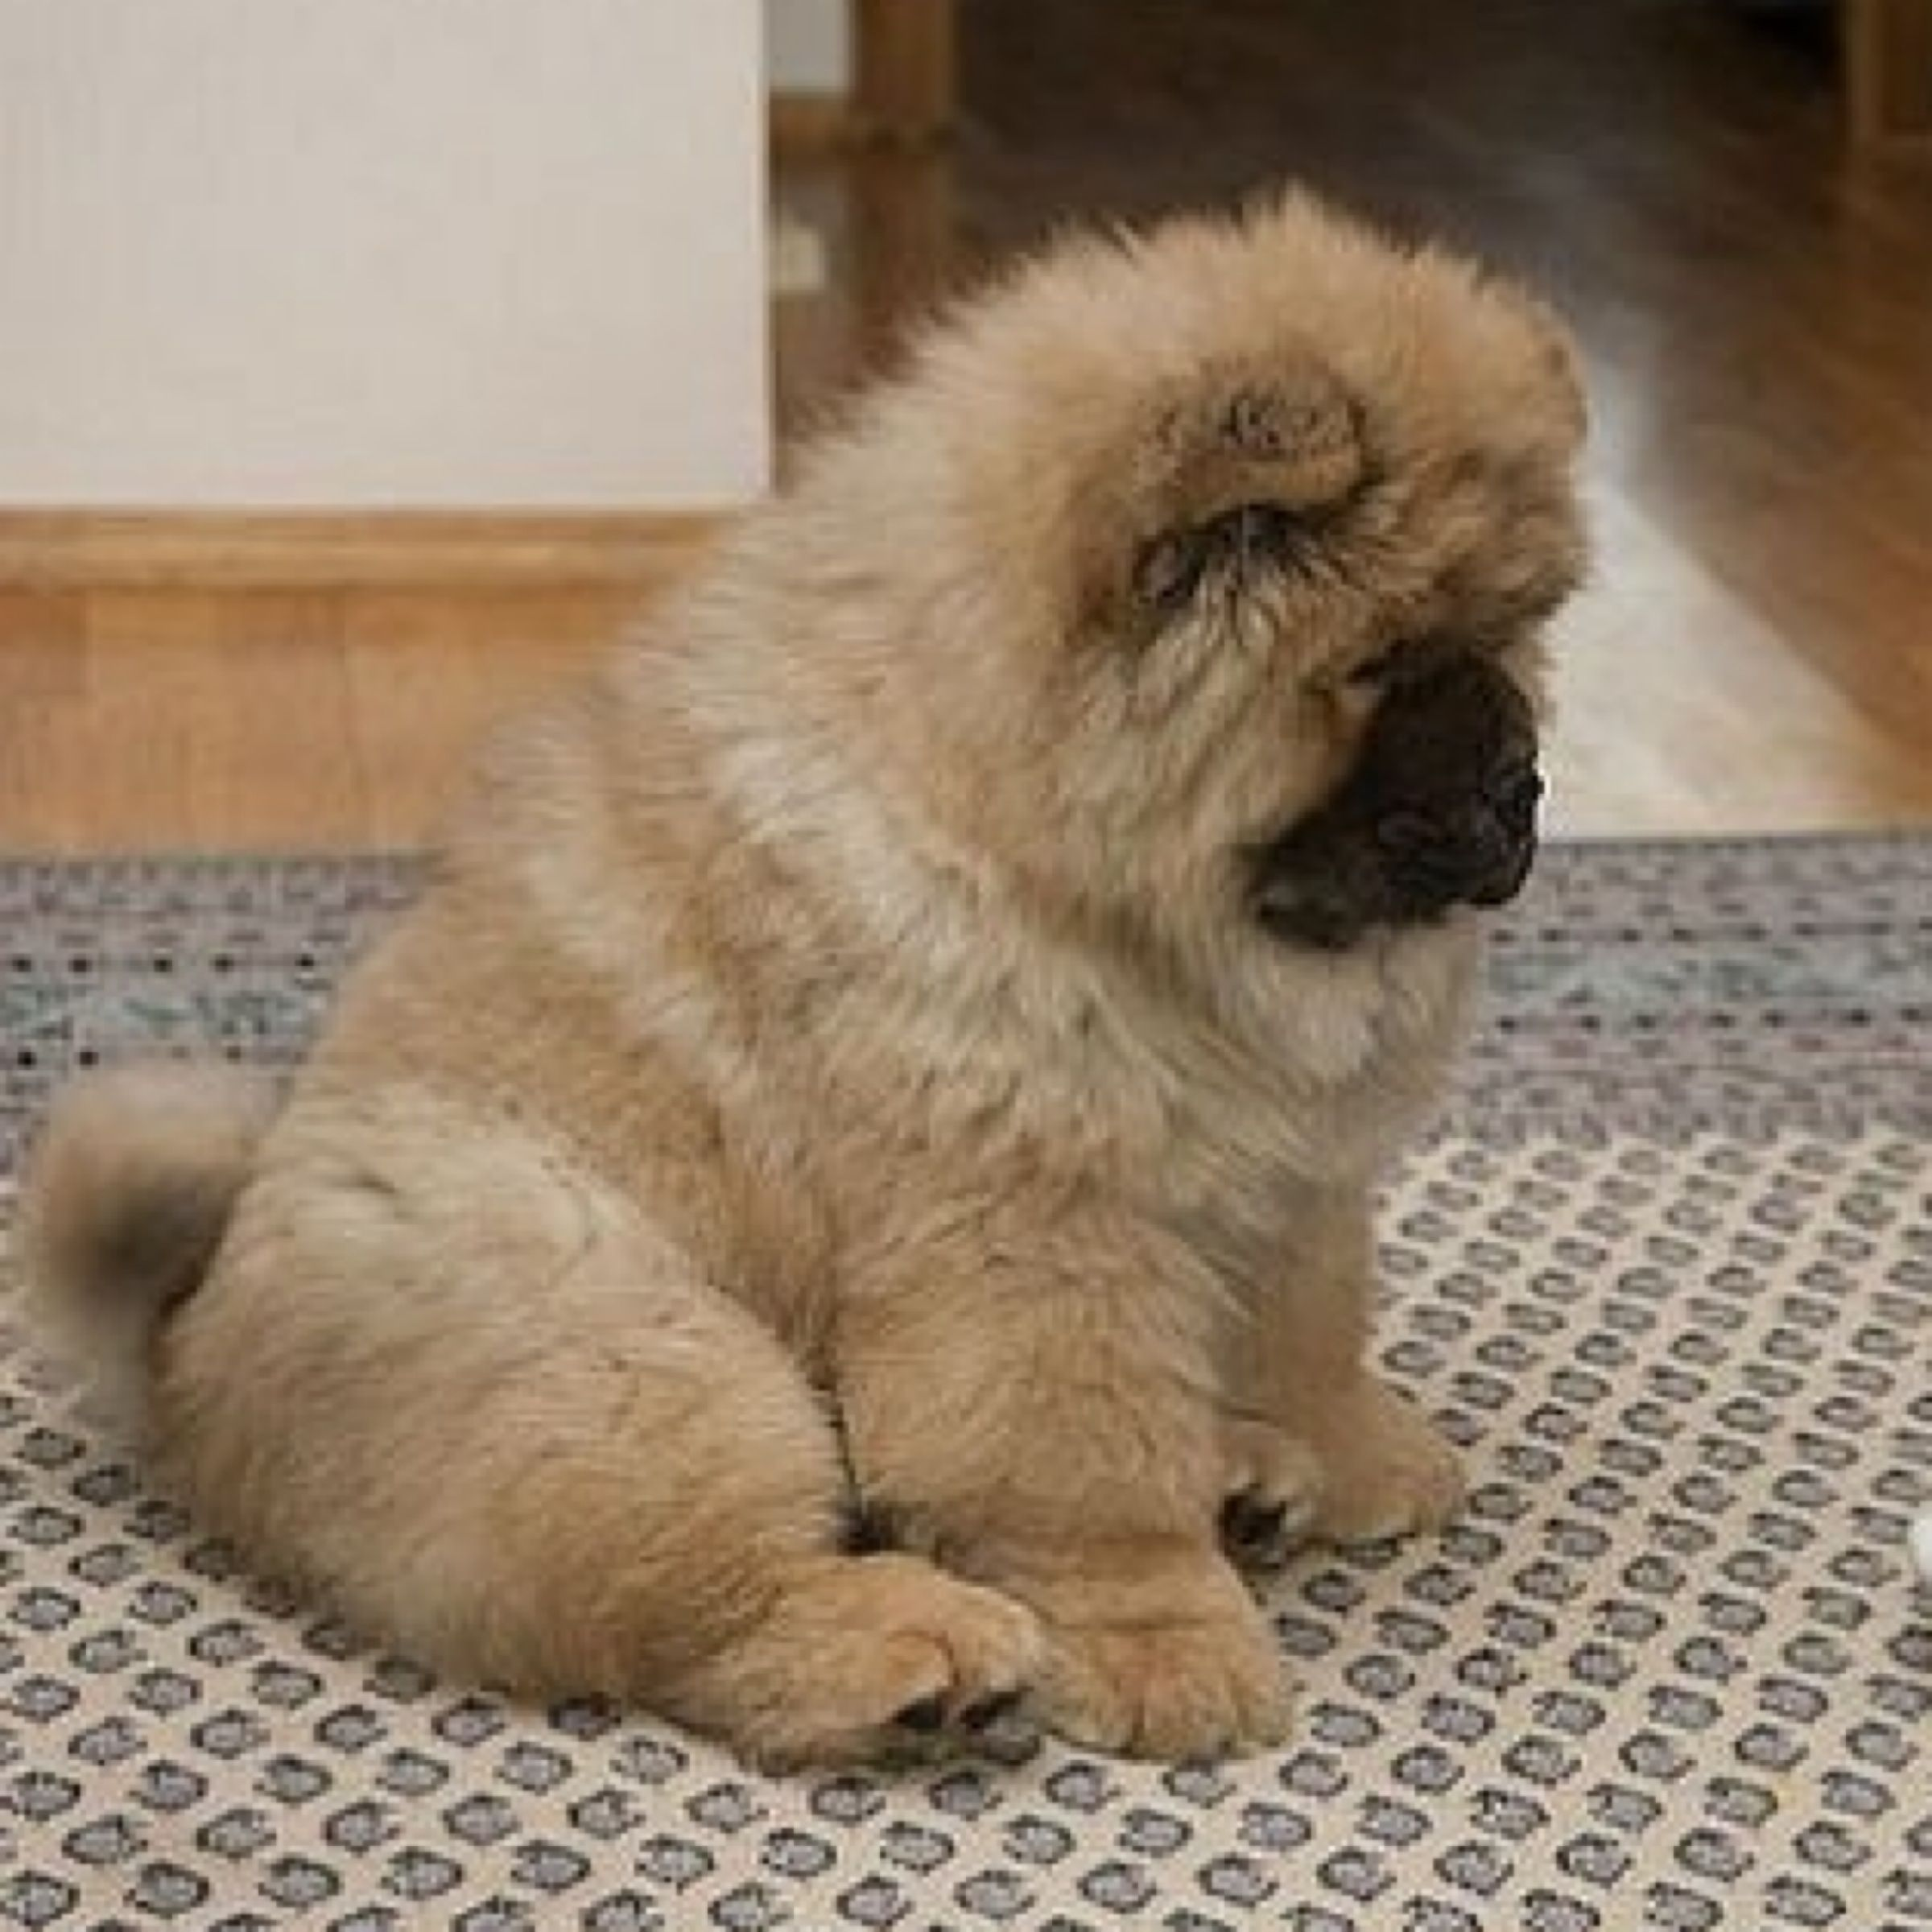 So Cute Chow Chow Chow Chow Pinterest Animal Dog And Chow - This instagram chow chow looks like a fluffy potato and its so cute it doesnt even look real